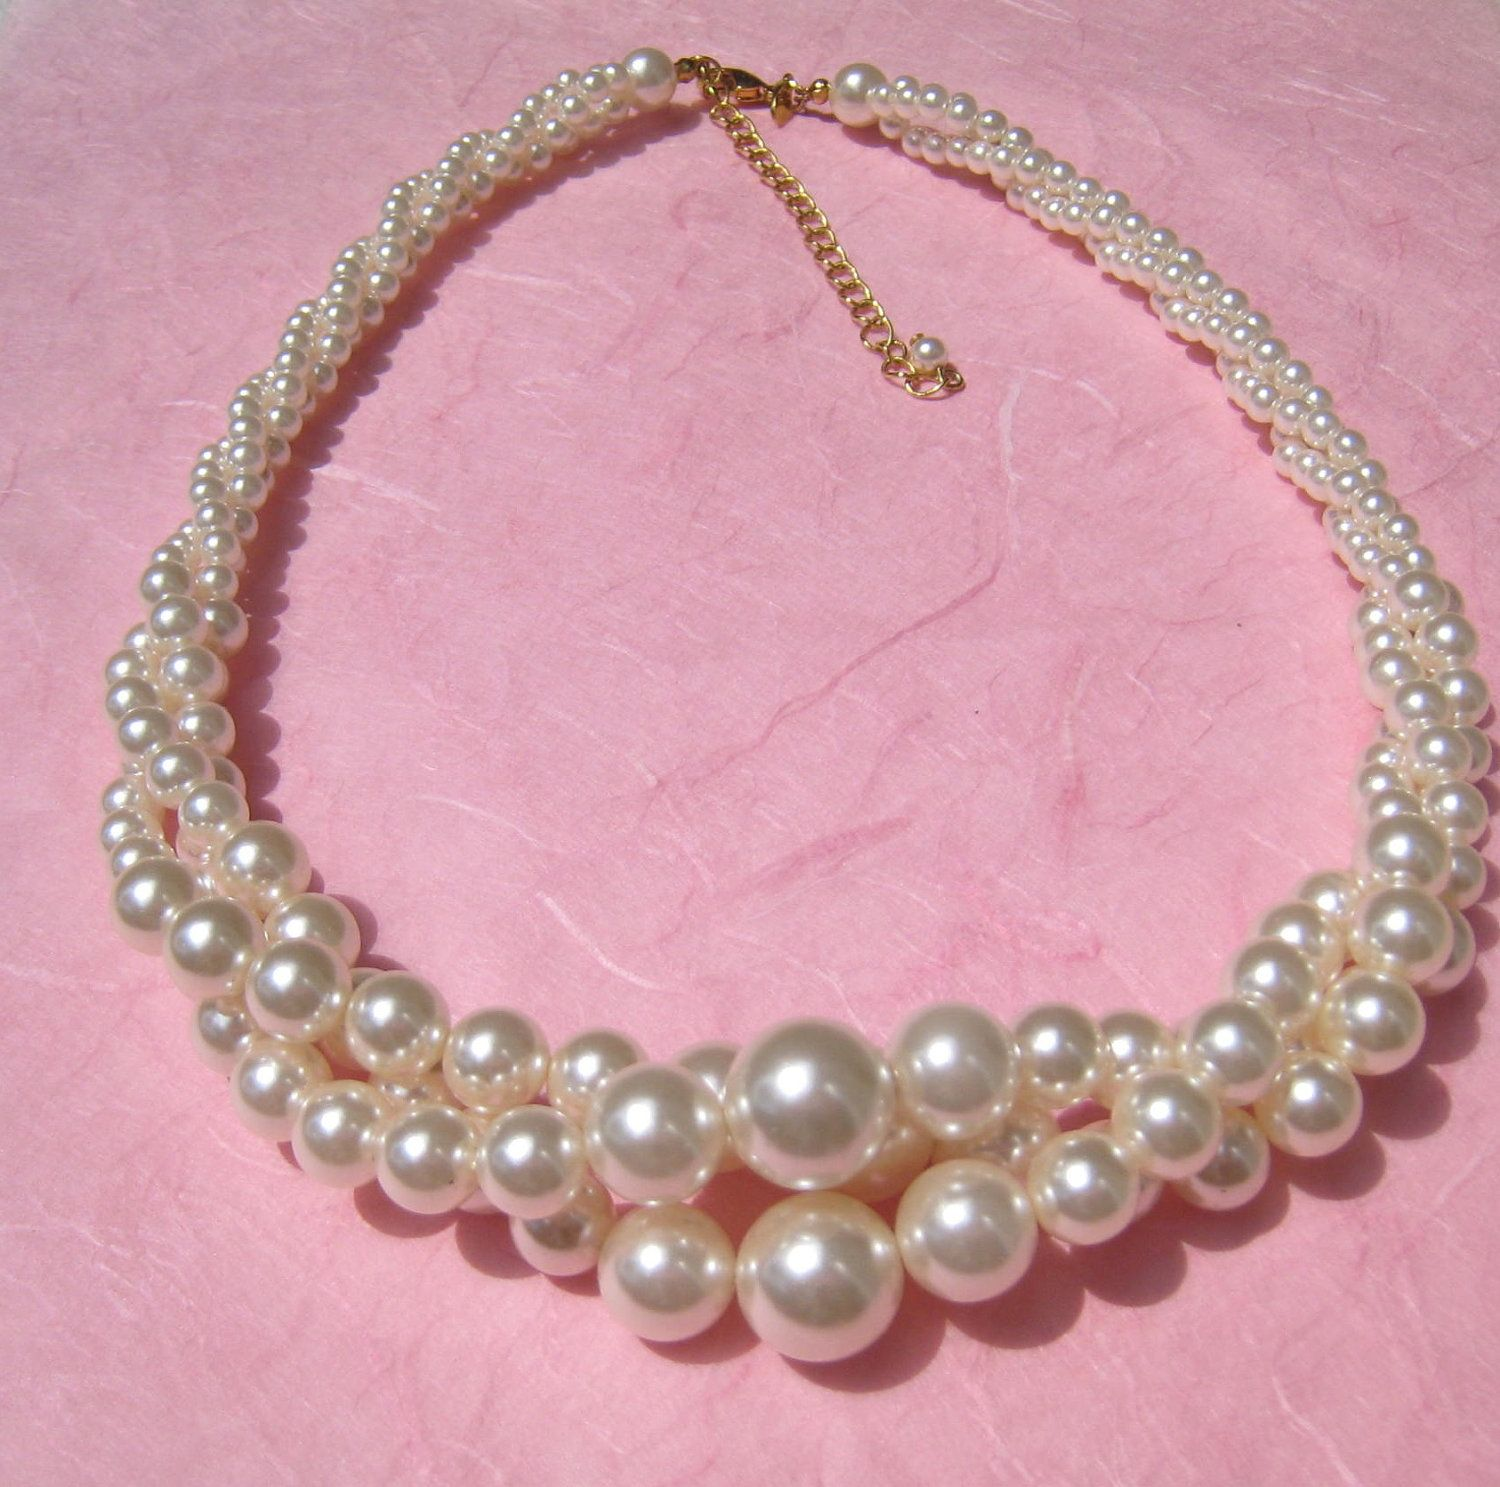 Three Strand Twisted Vintage Faux Pearl Necklace signed RMN